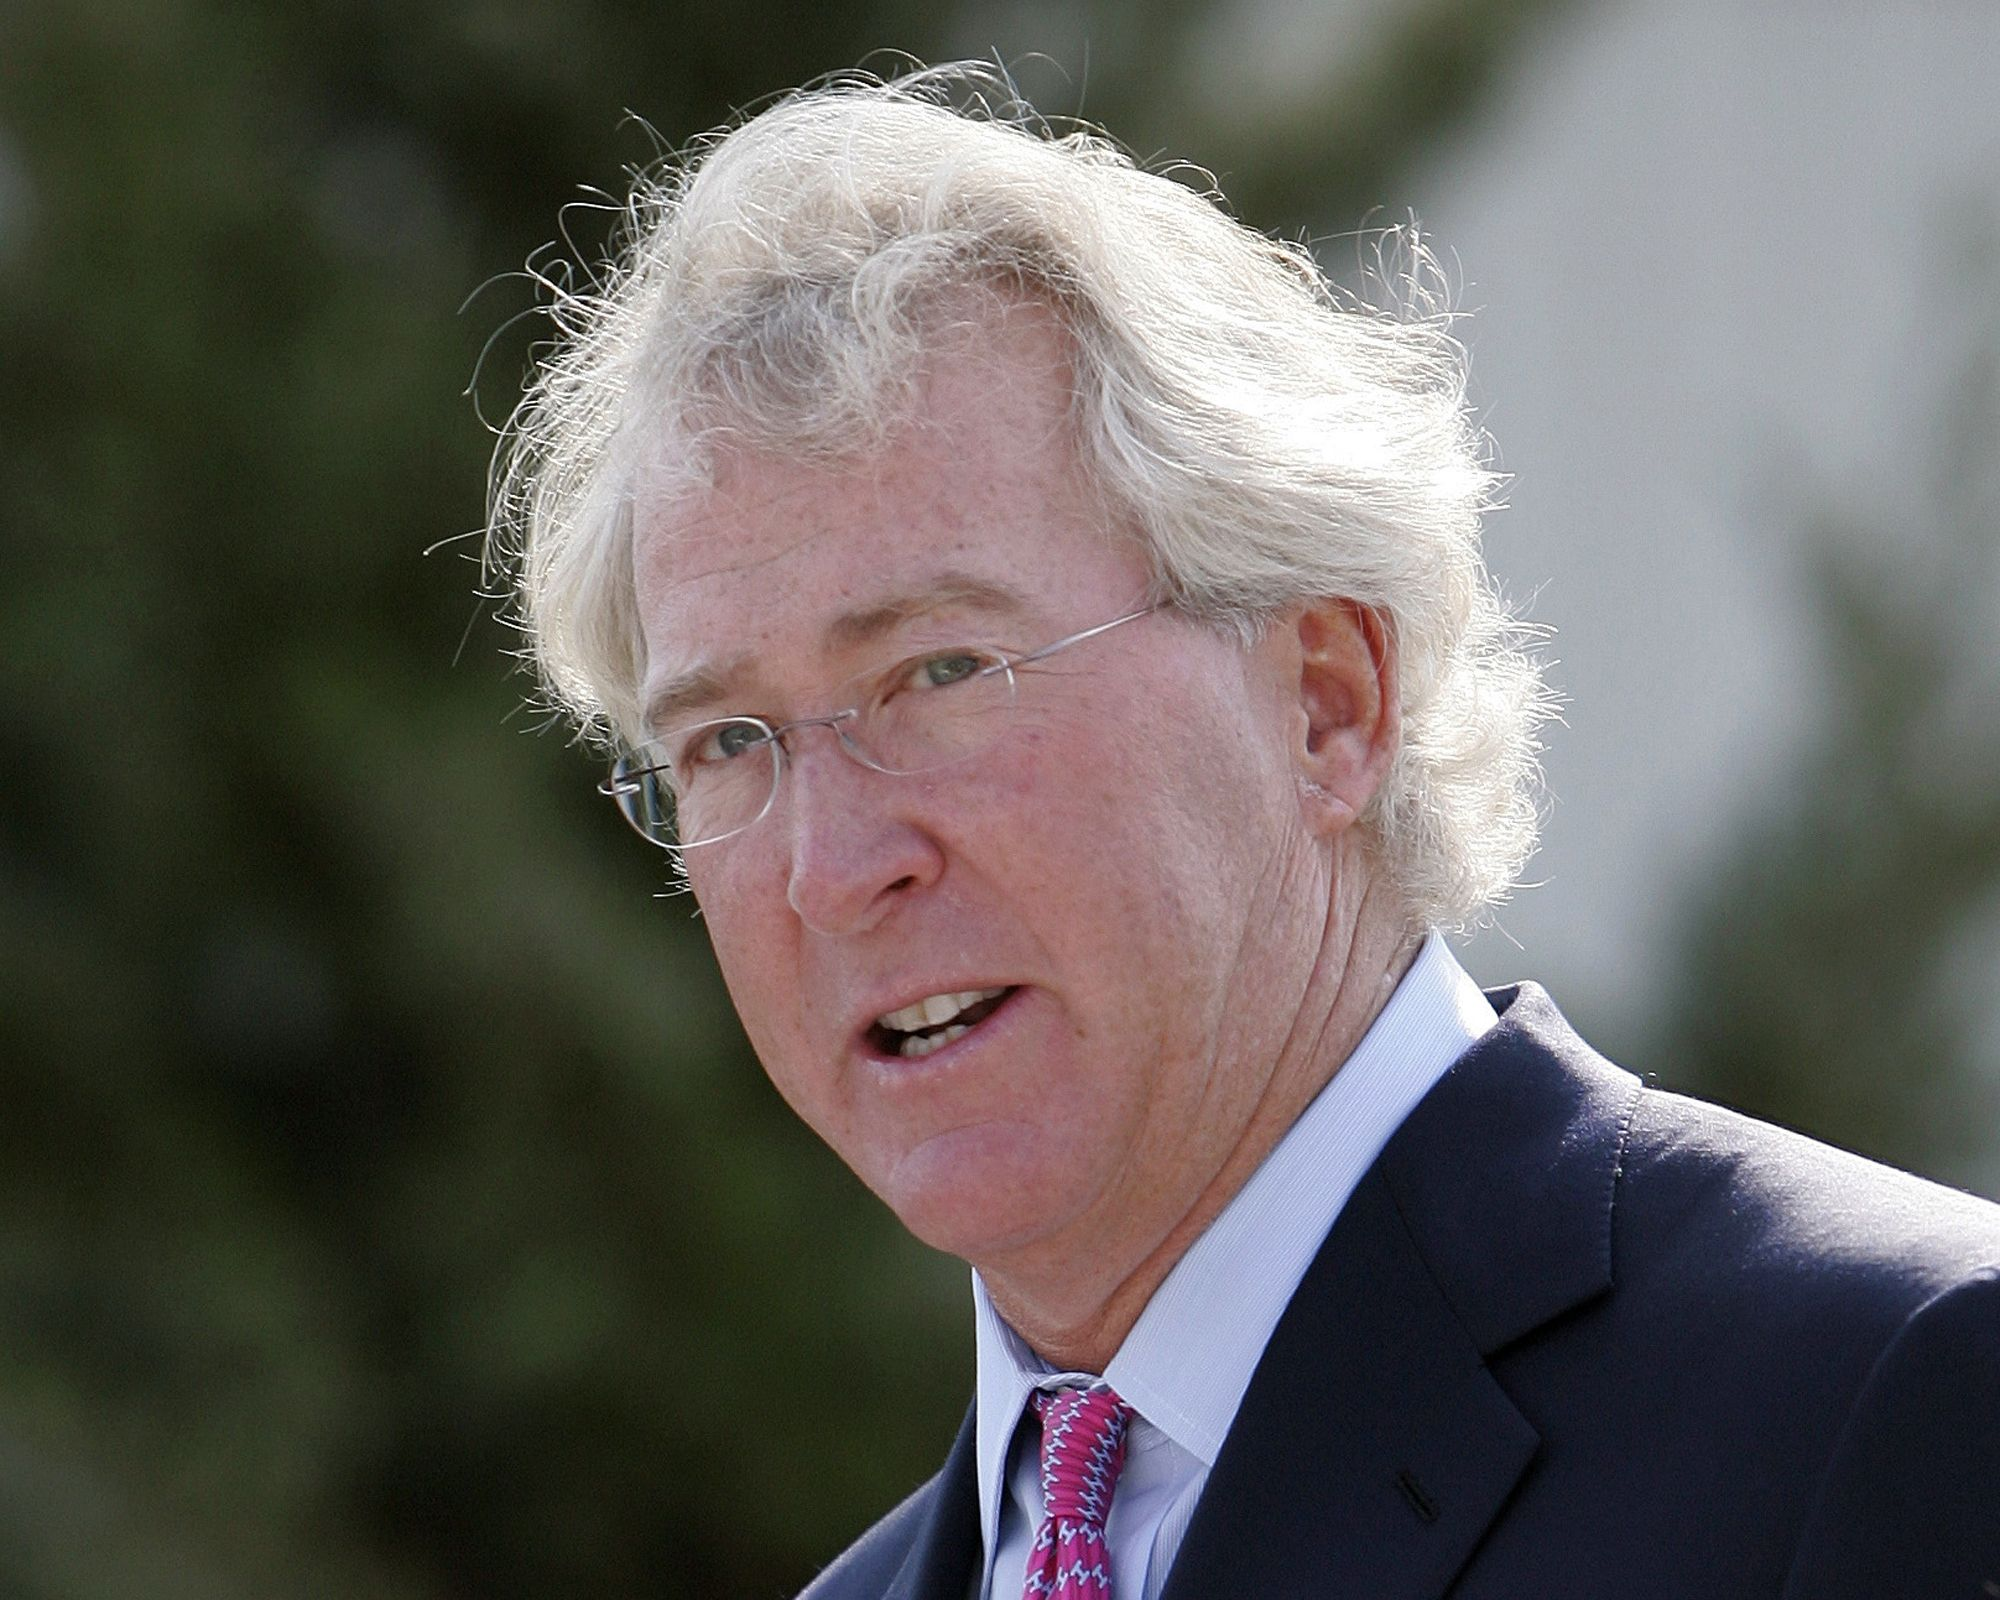 OKLAHOMA CITY (AP) — Energy tycoon Aubrey McClendon earned a reputation as a pioneer, backing new drilling technology, building Chesapeake Energy into one of the nation's largest independent producers of natural gas and accumulating a fortune that helped him buy part of an NBA team.  Balderrama said McClendon was speeding and not wearing a seat belt in his 2013 Chevrolet Tahoe, but it's too early to tell if the collision was intentional.  McClendon, who co-founded Chesapeake Energy and…